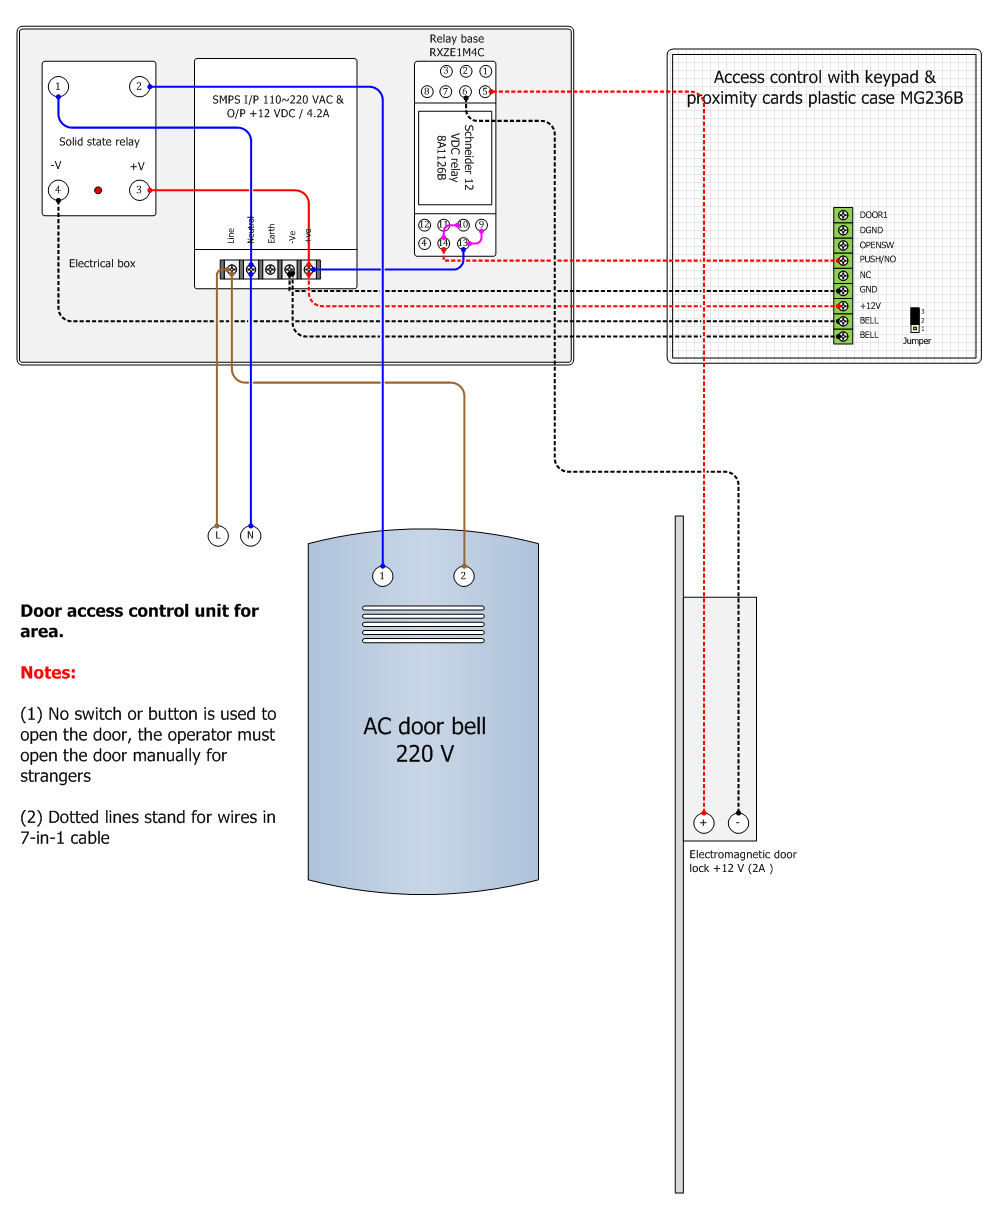 Eng. Shady Mohsen blog: Access control MG236B wiring diagramEng. Shady Mohsen blog - blogger